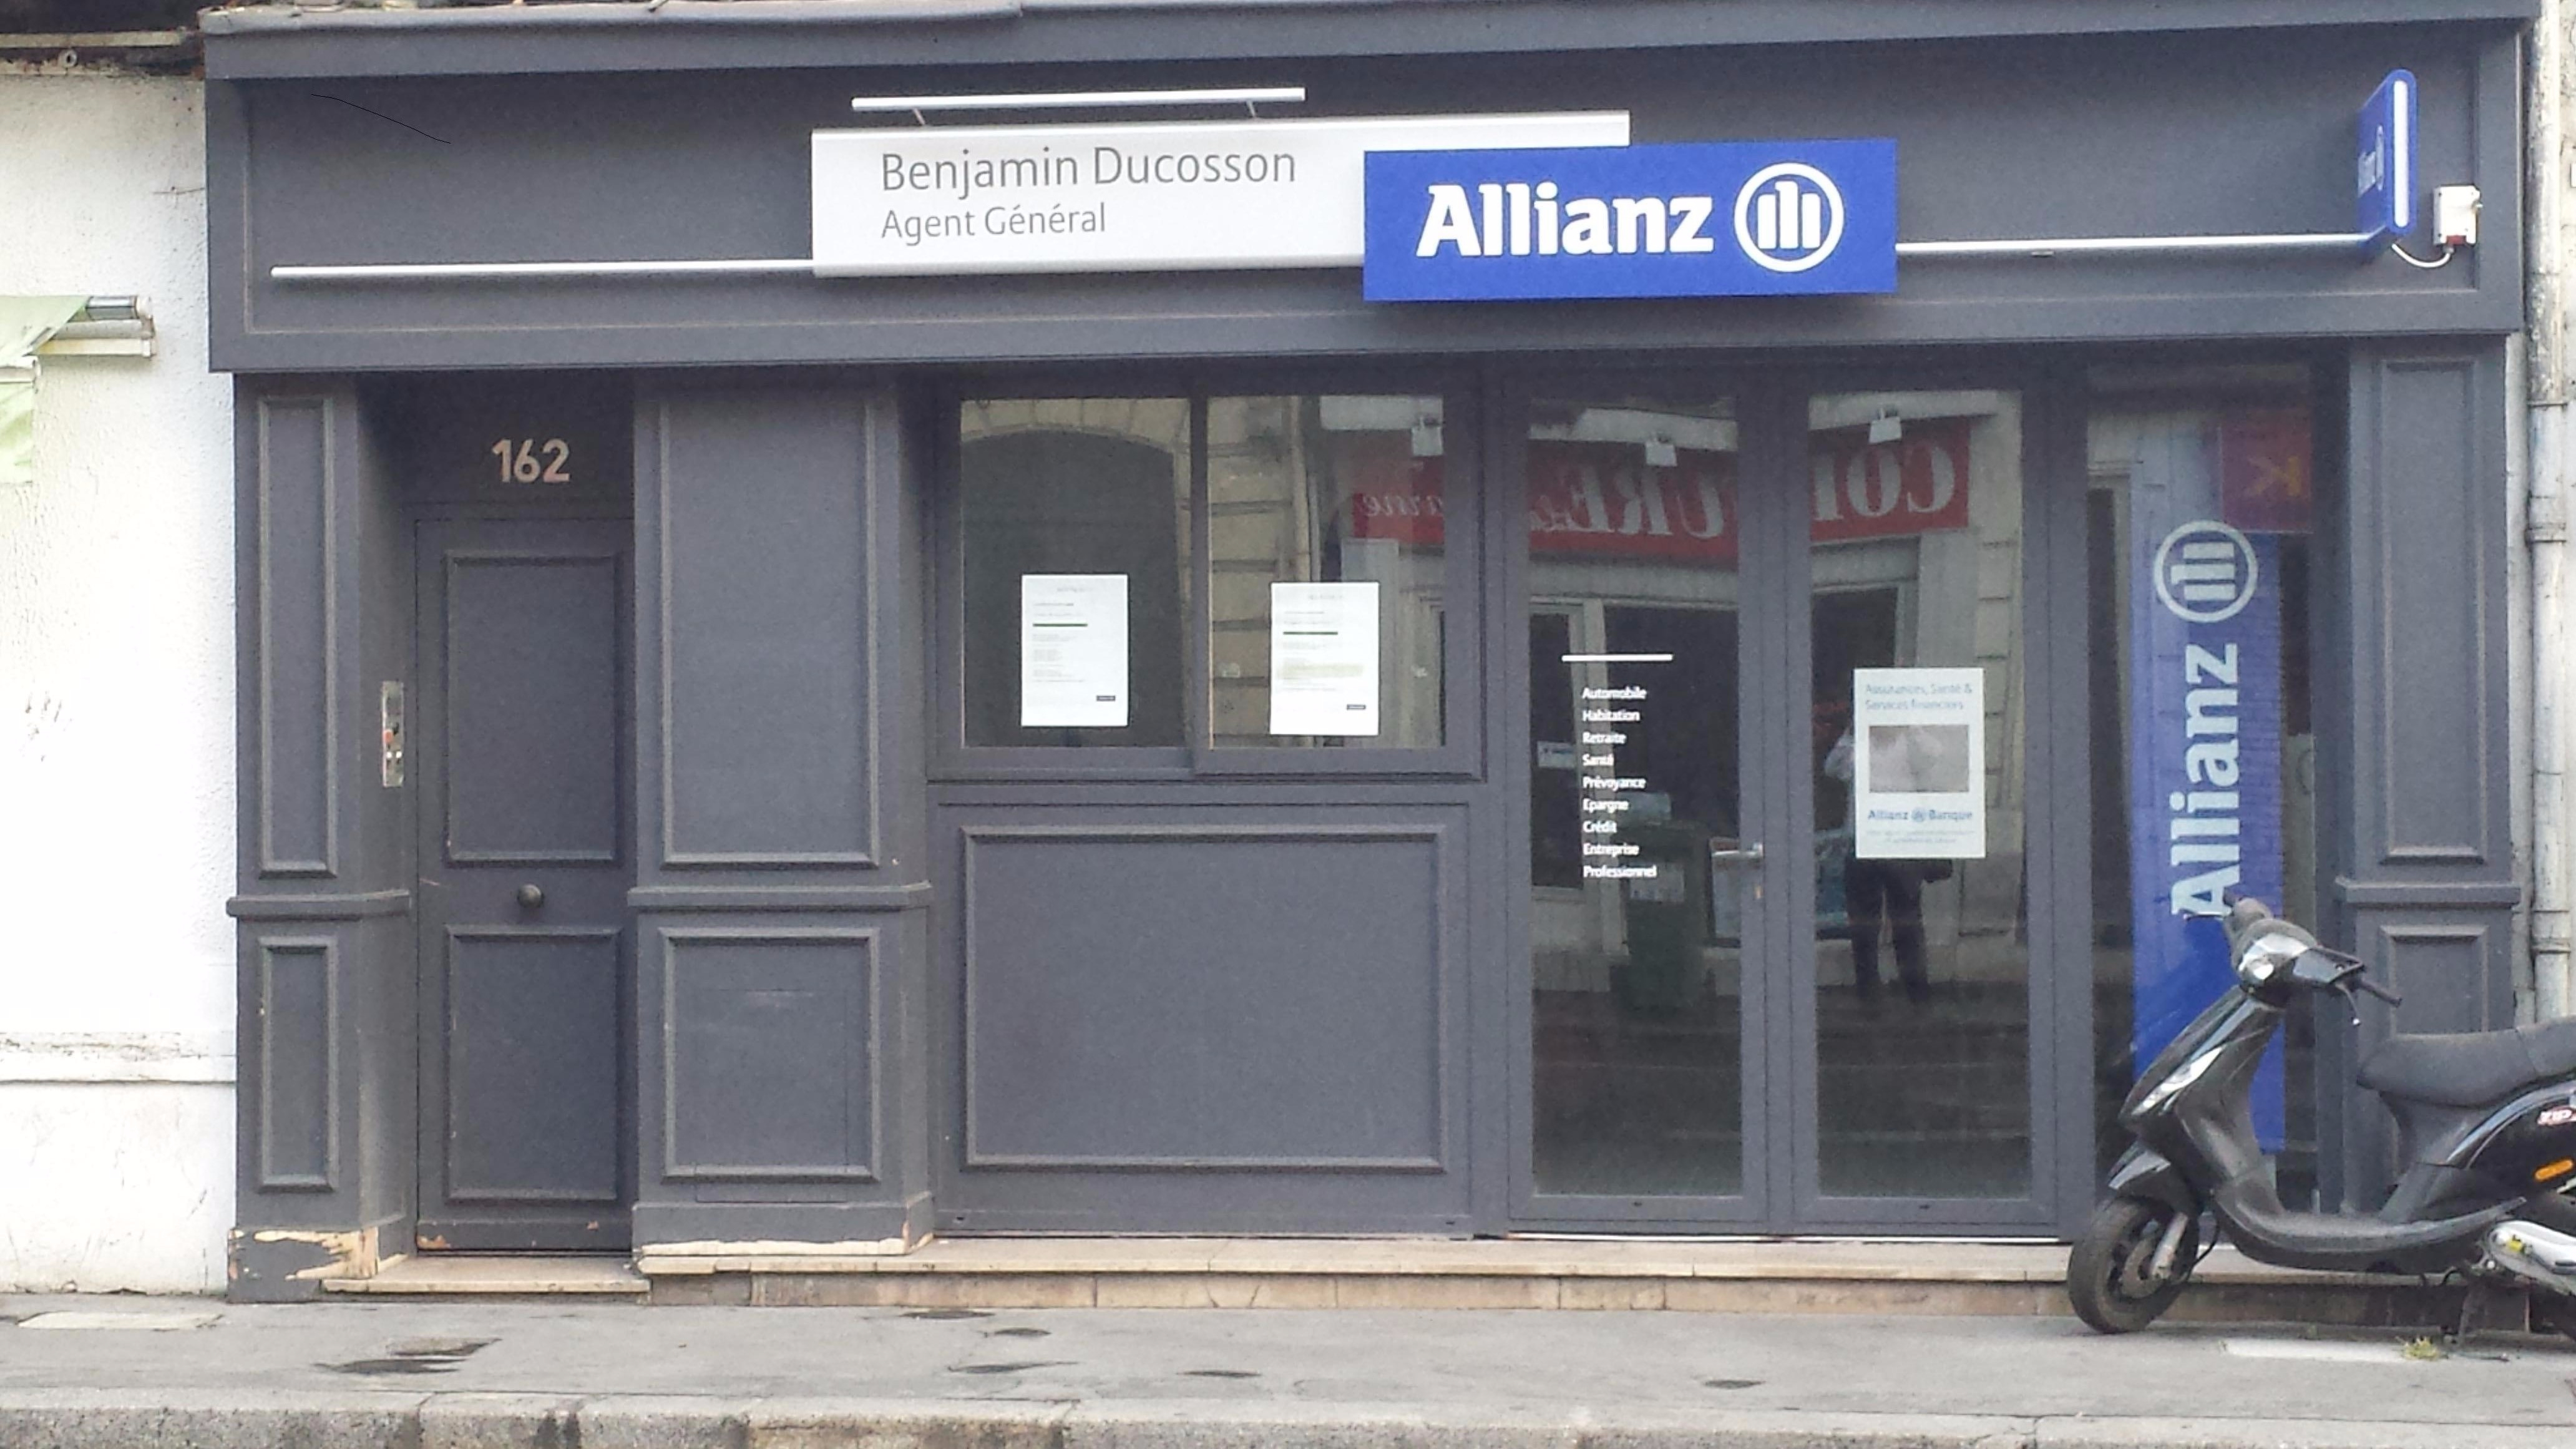 Allianz Bordeaux saint jean - Benjamin DUCOSSON